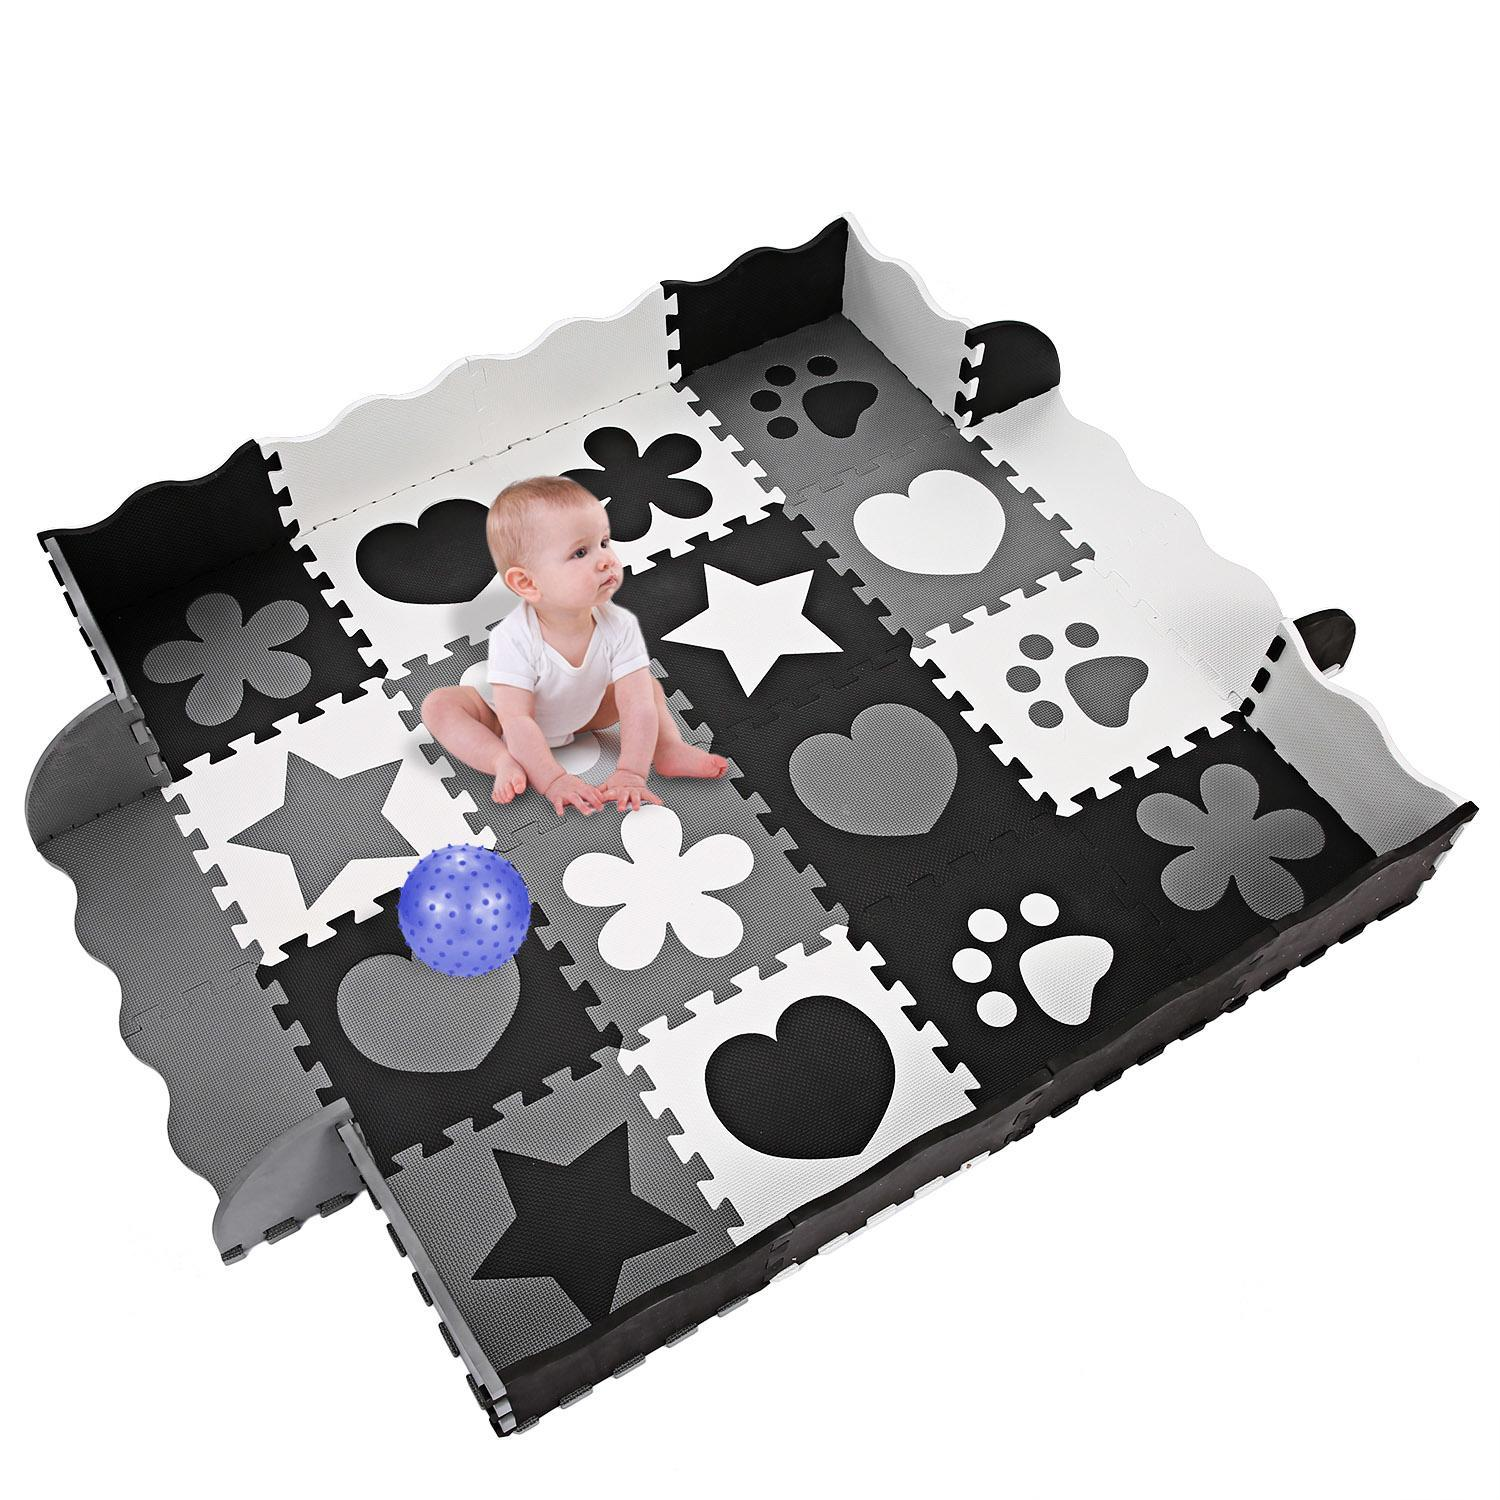 Hifashion Kids Baby Non-Toxic Extra Thick Foam Large with Gate Fence Crawling Play Mat HFON